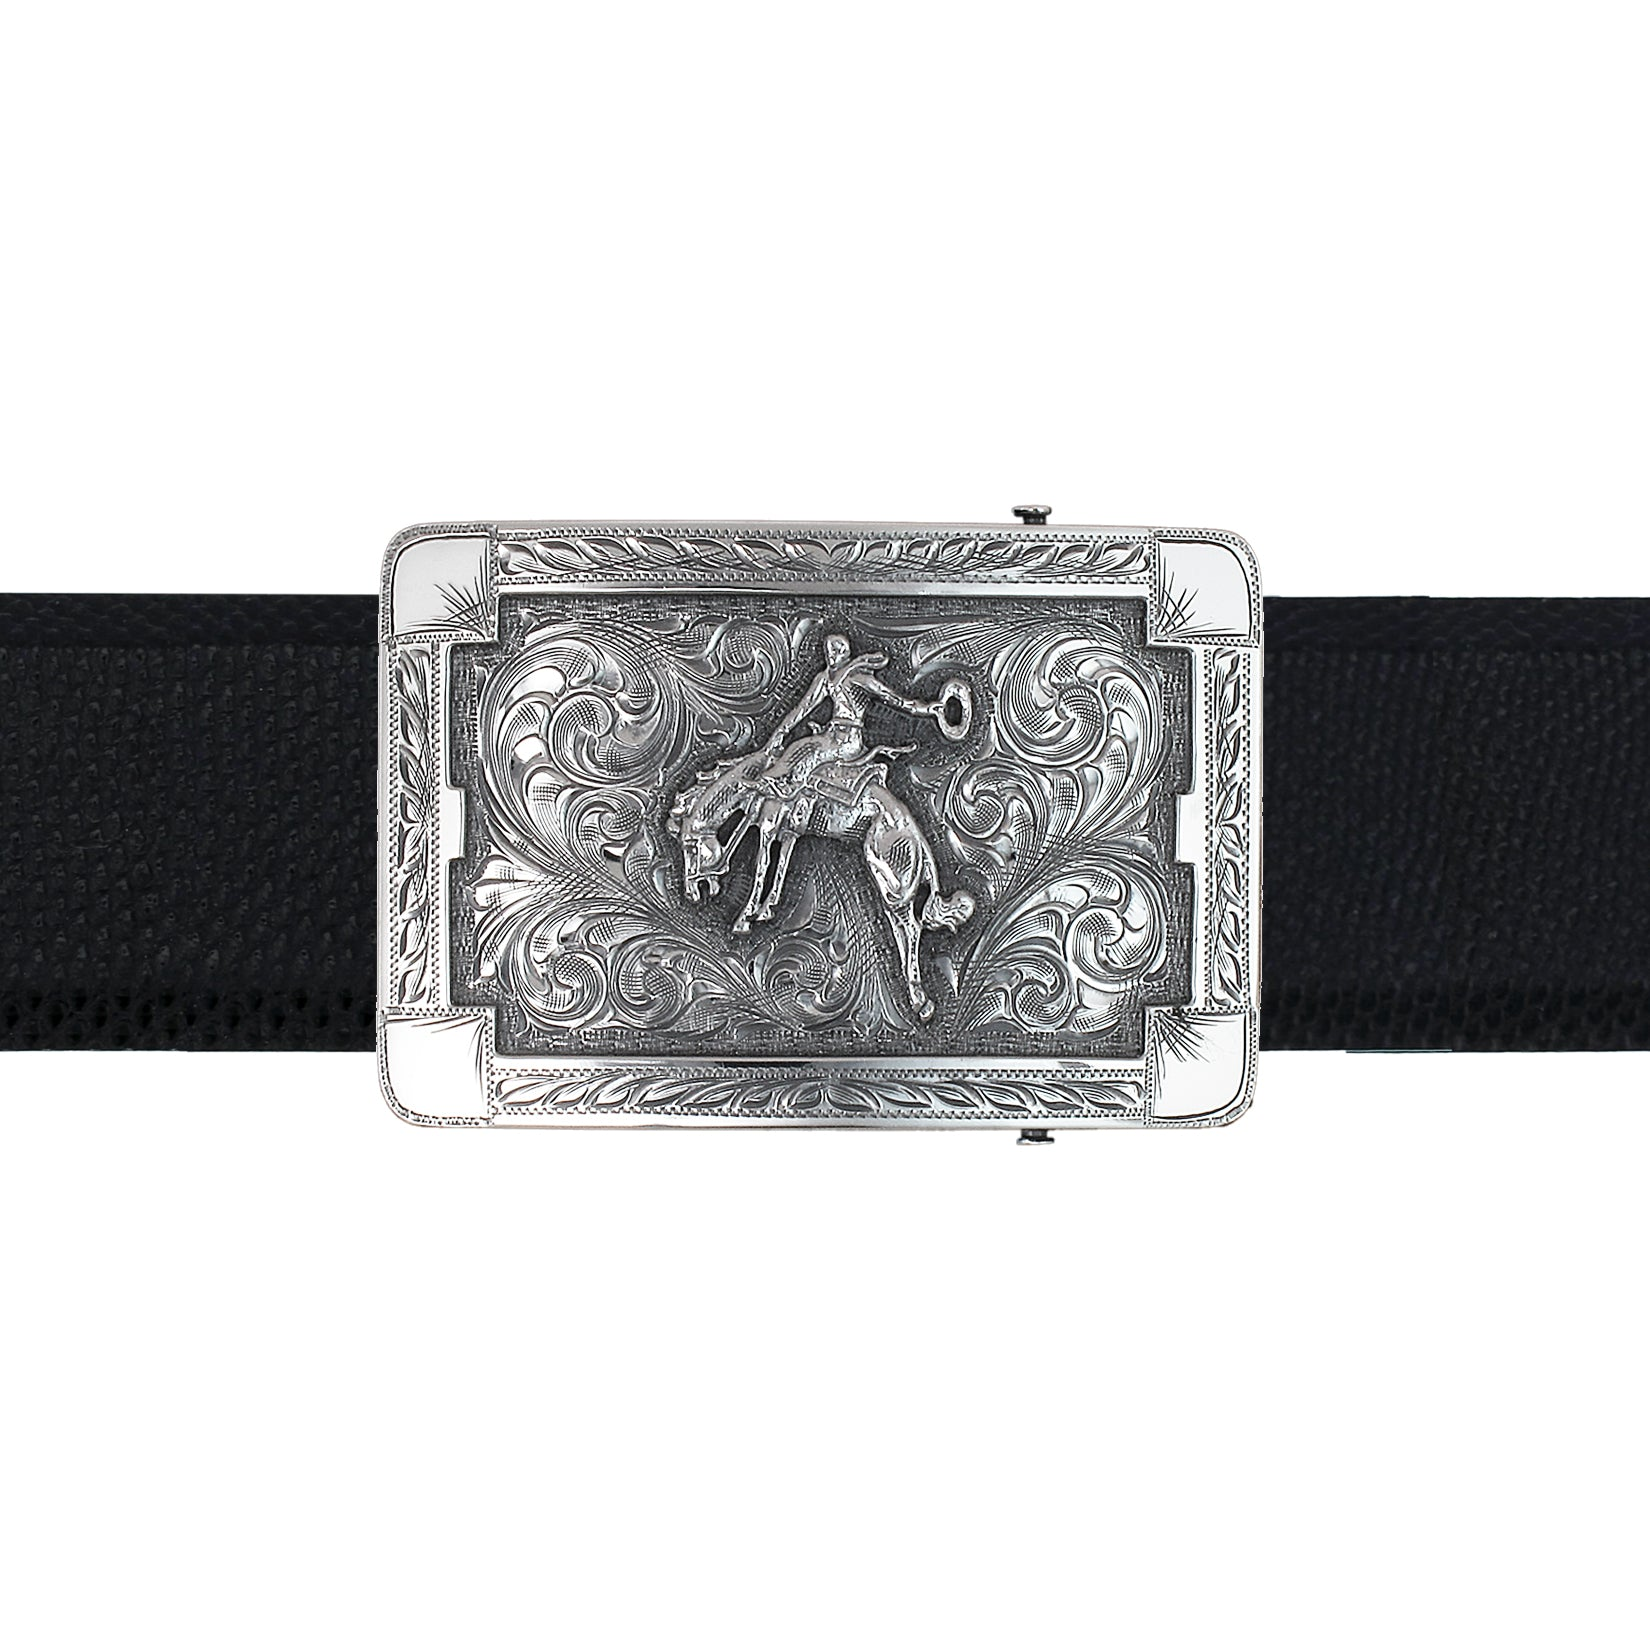 Martin 1803 Sterling Bronc Rider Trophy Buckle